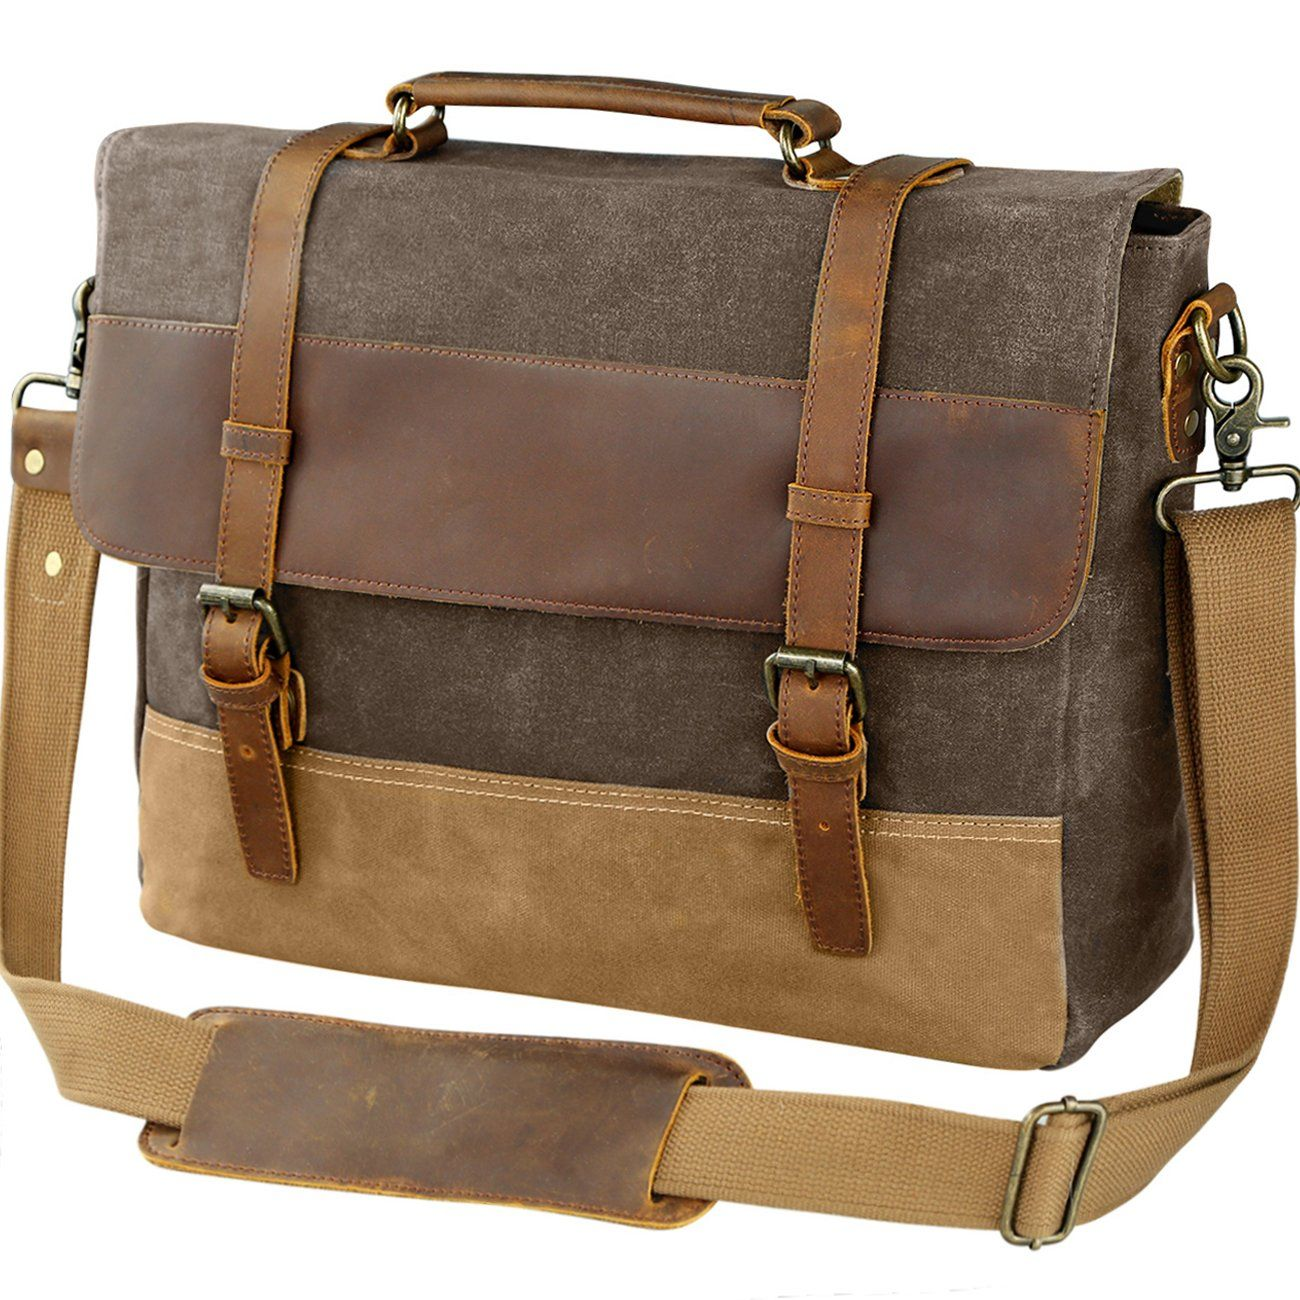 Men Retro Waterproof Canvas Messenger Bag Handbag Business Shoulder Bag Satchel